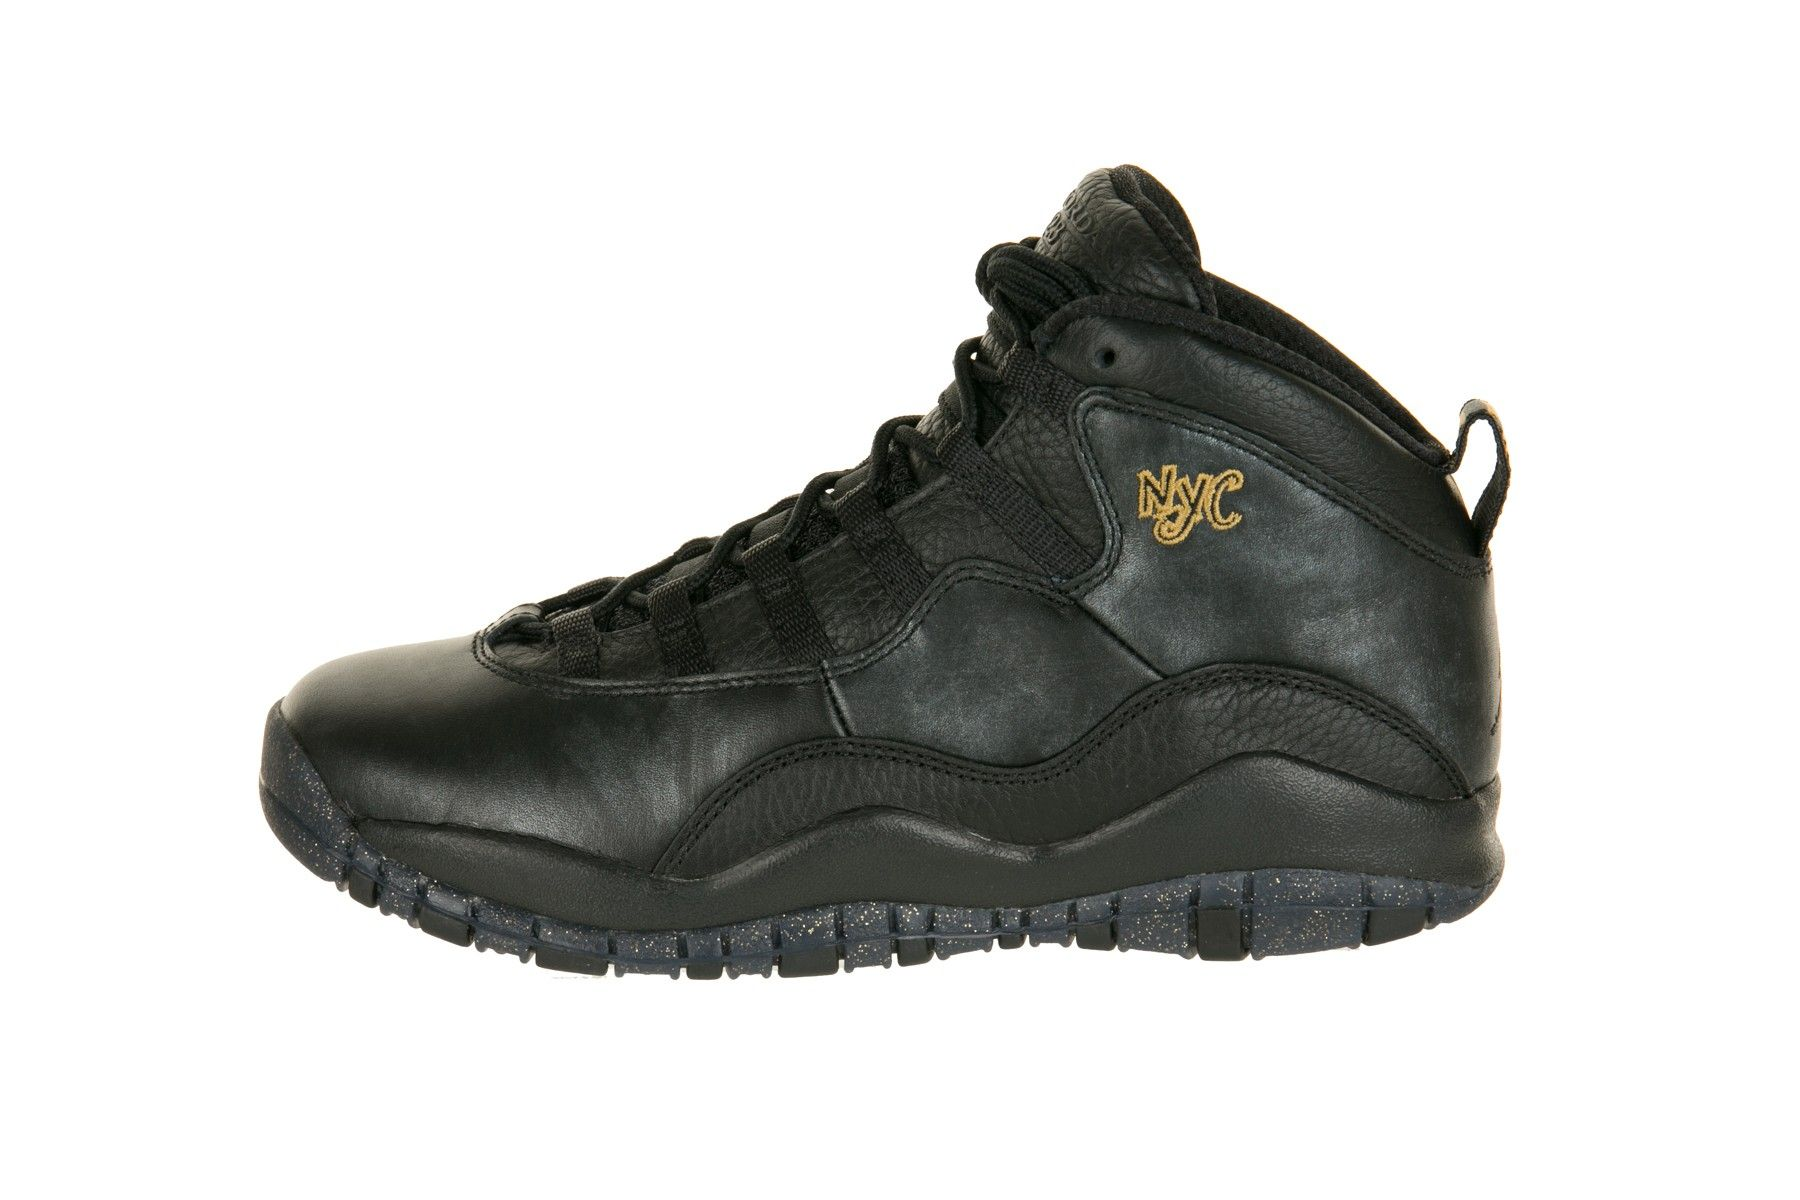 nice shoes undefeated x outlet for sale Basket Nike Air Jordan 10 Retro (GS) - 310806-012 - Pegashoes